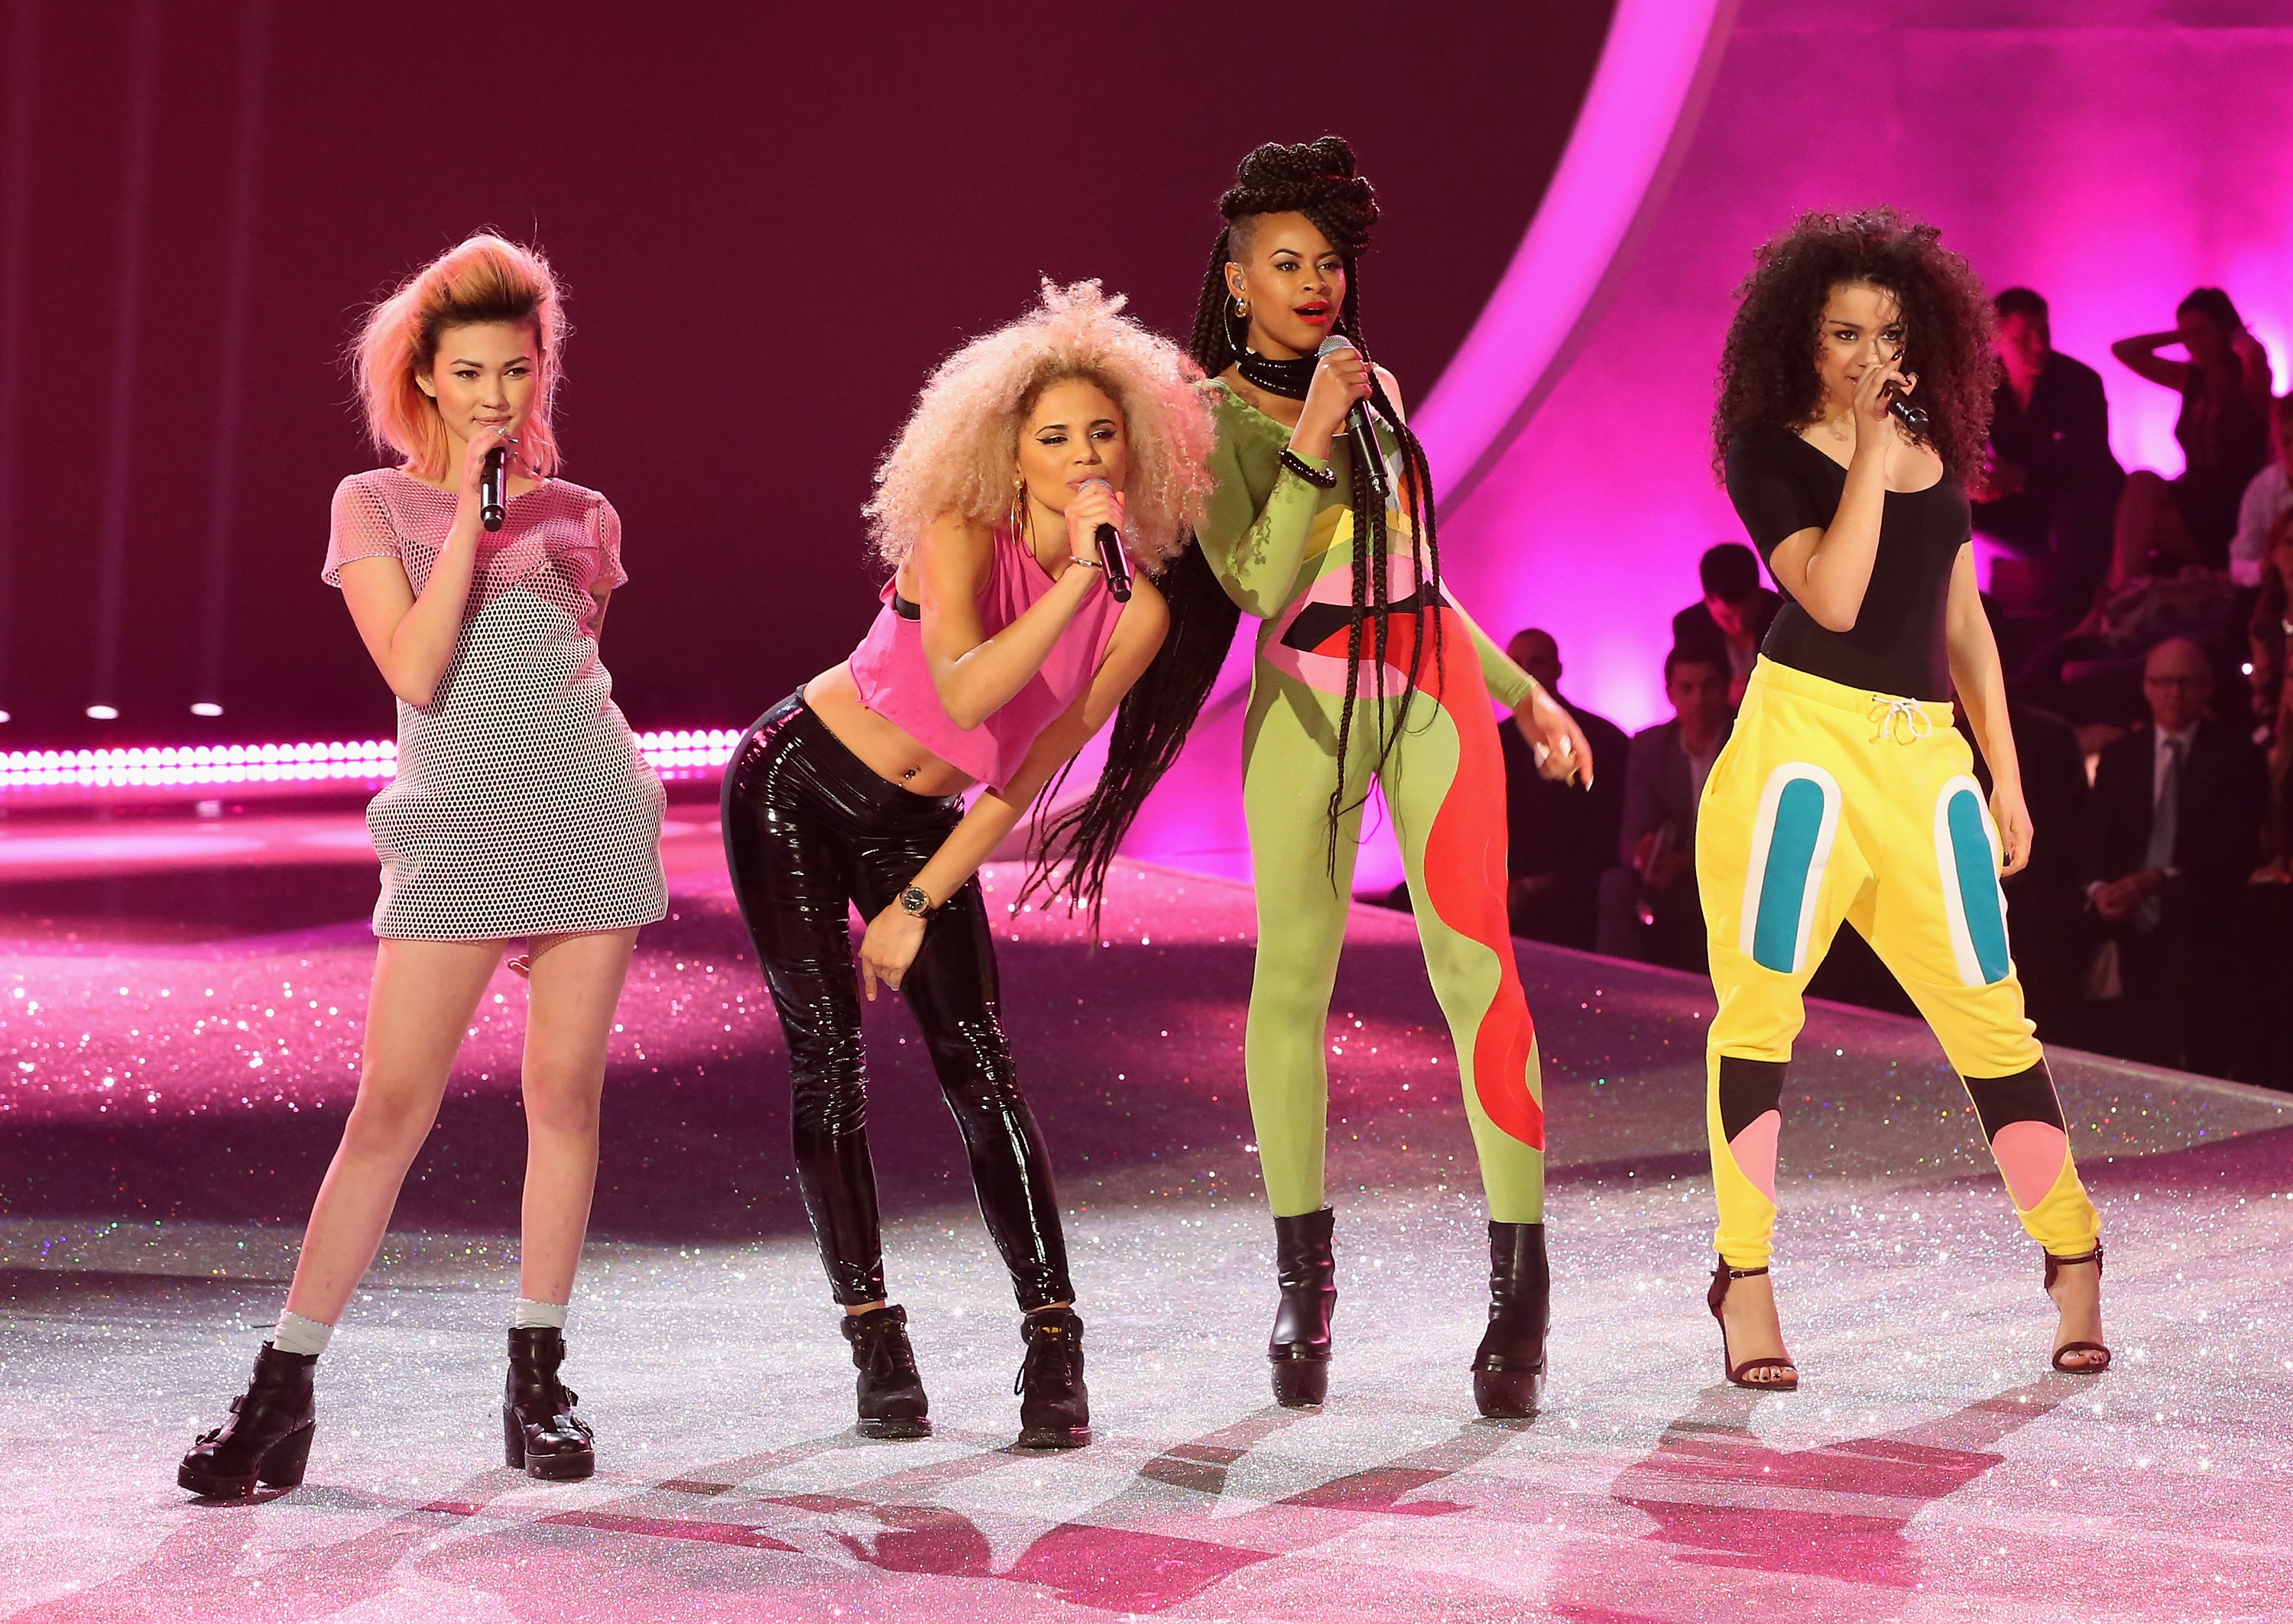 The Victoria's Secret Fashion Show 2013 Music The English girl group is one